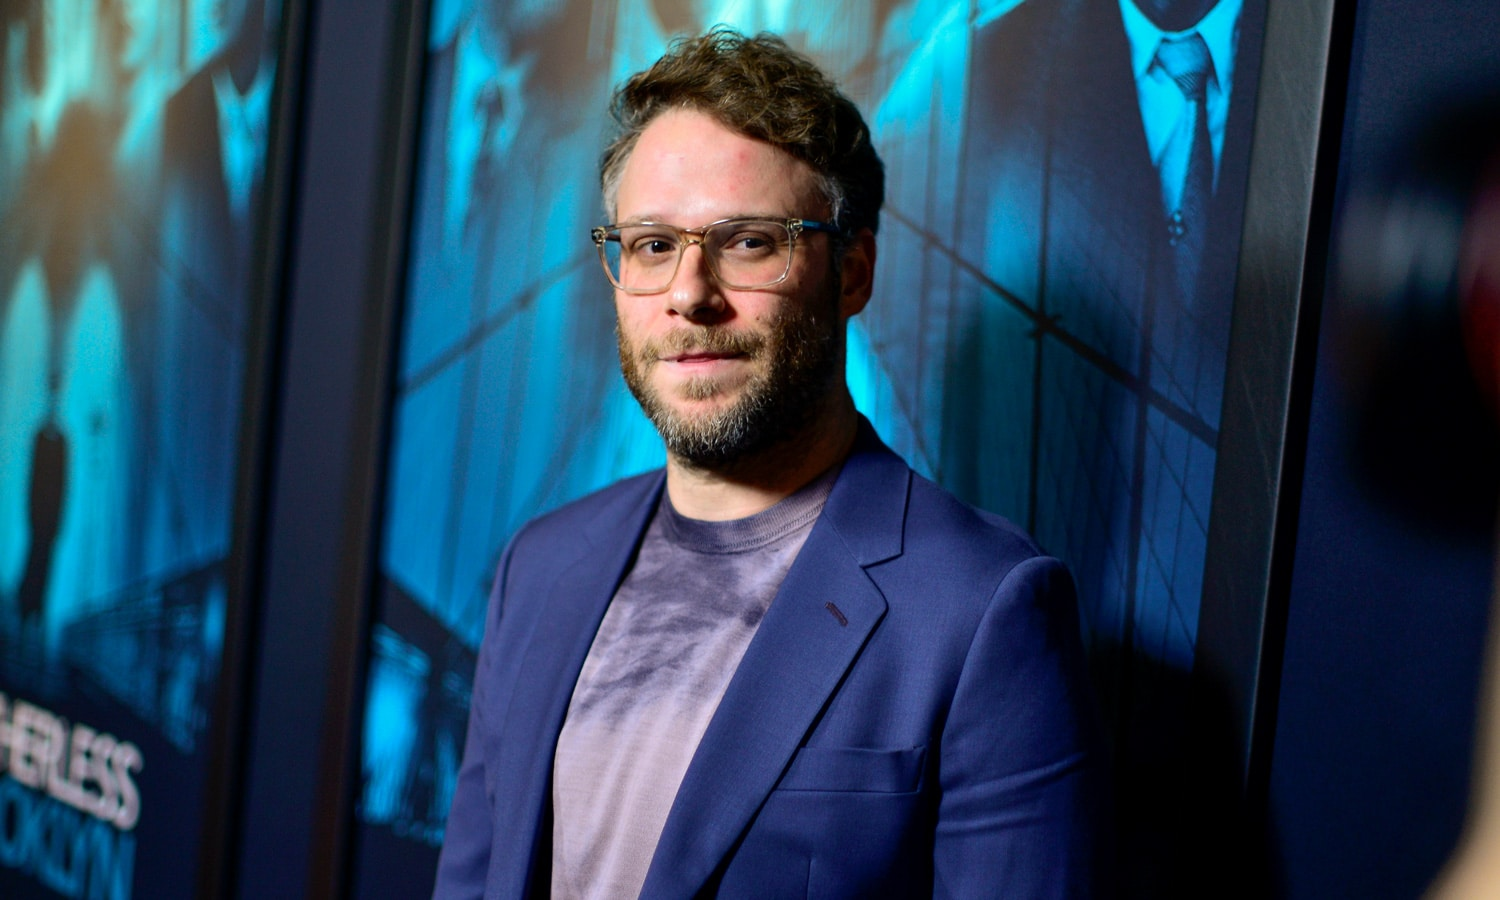 Seth Rogen's Covid-19 Advice- Smoke Weed And Watch Movies